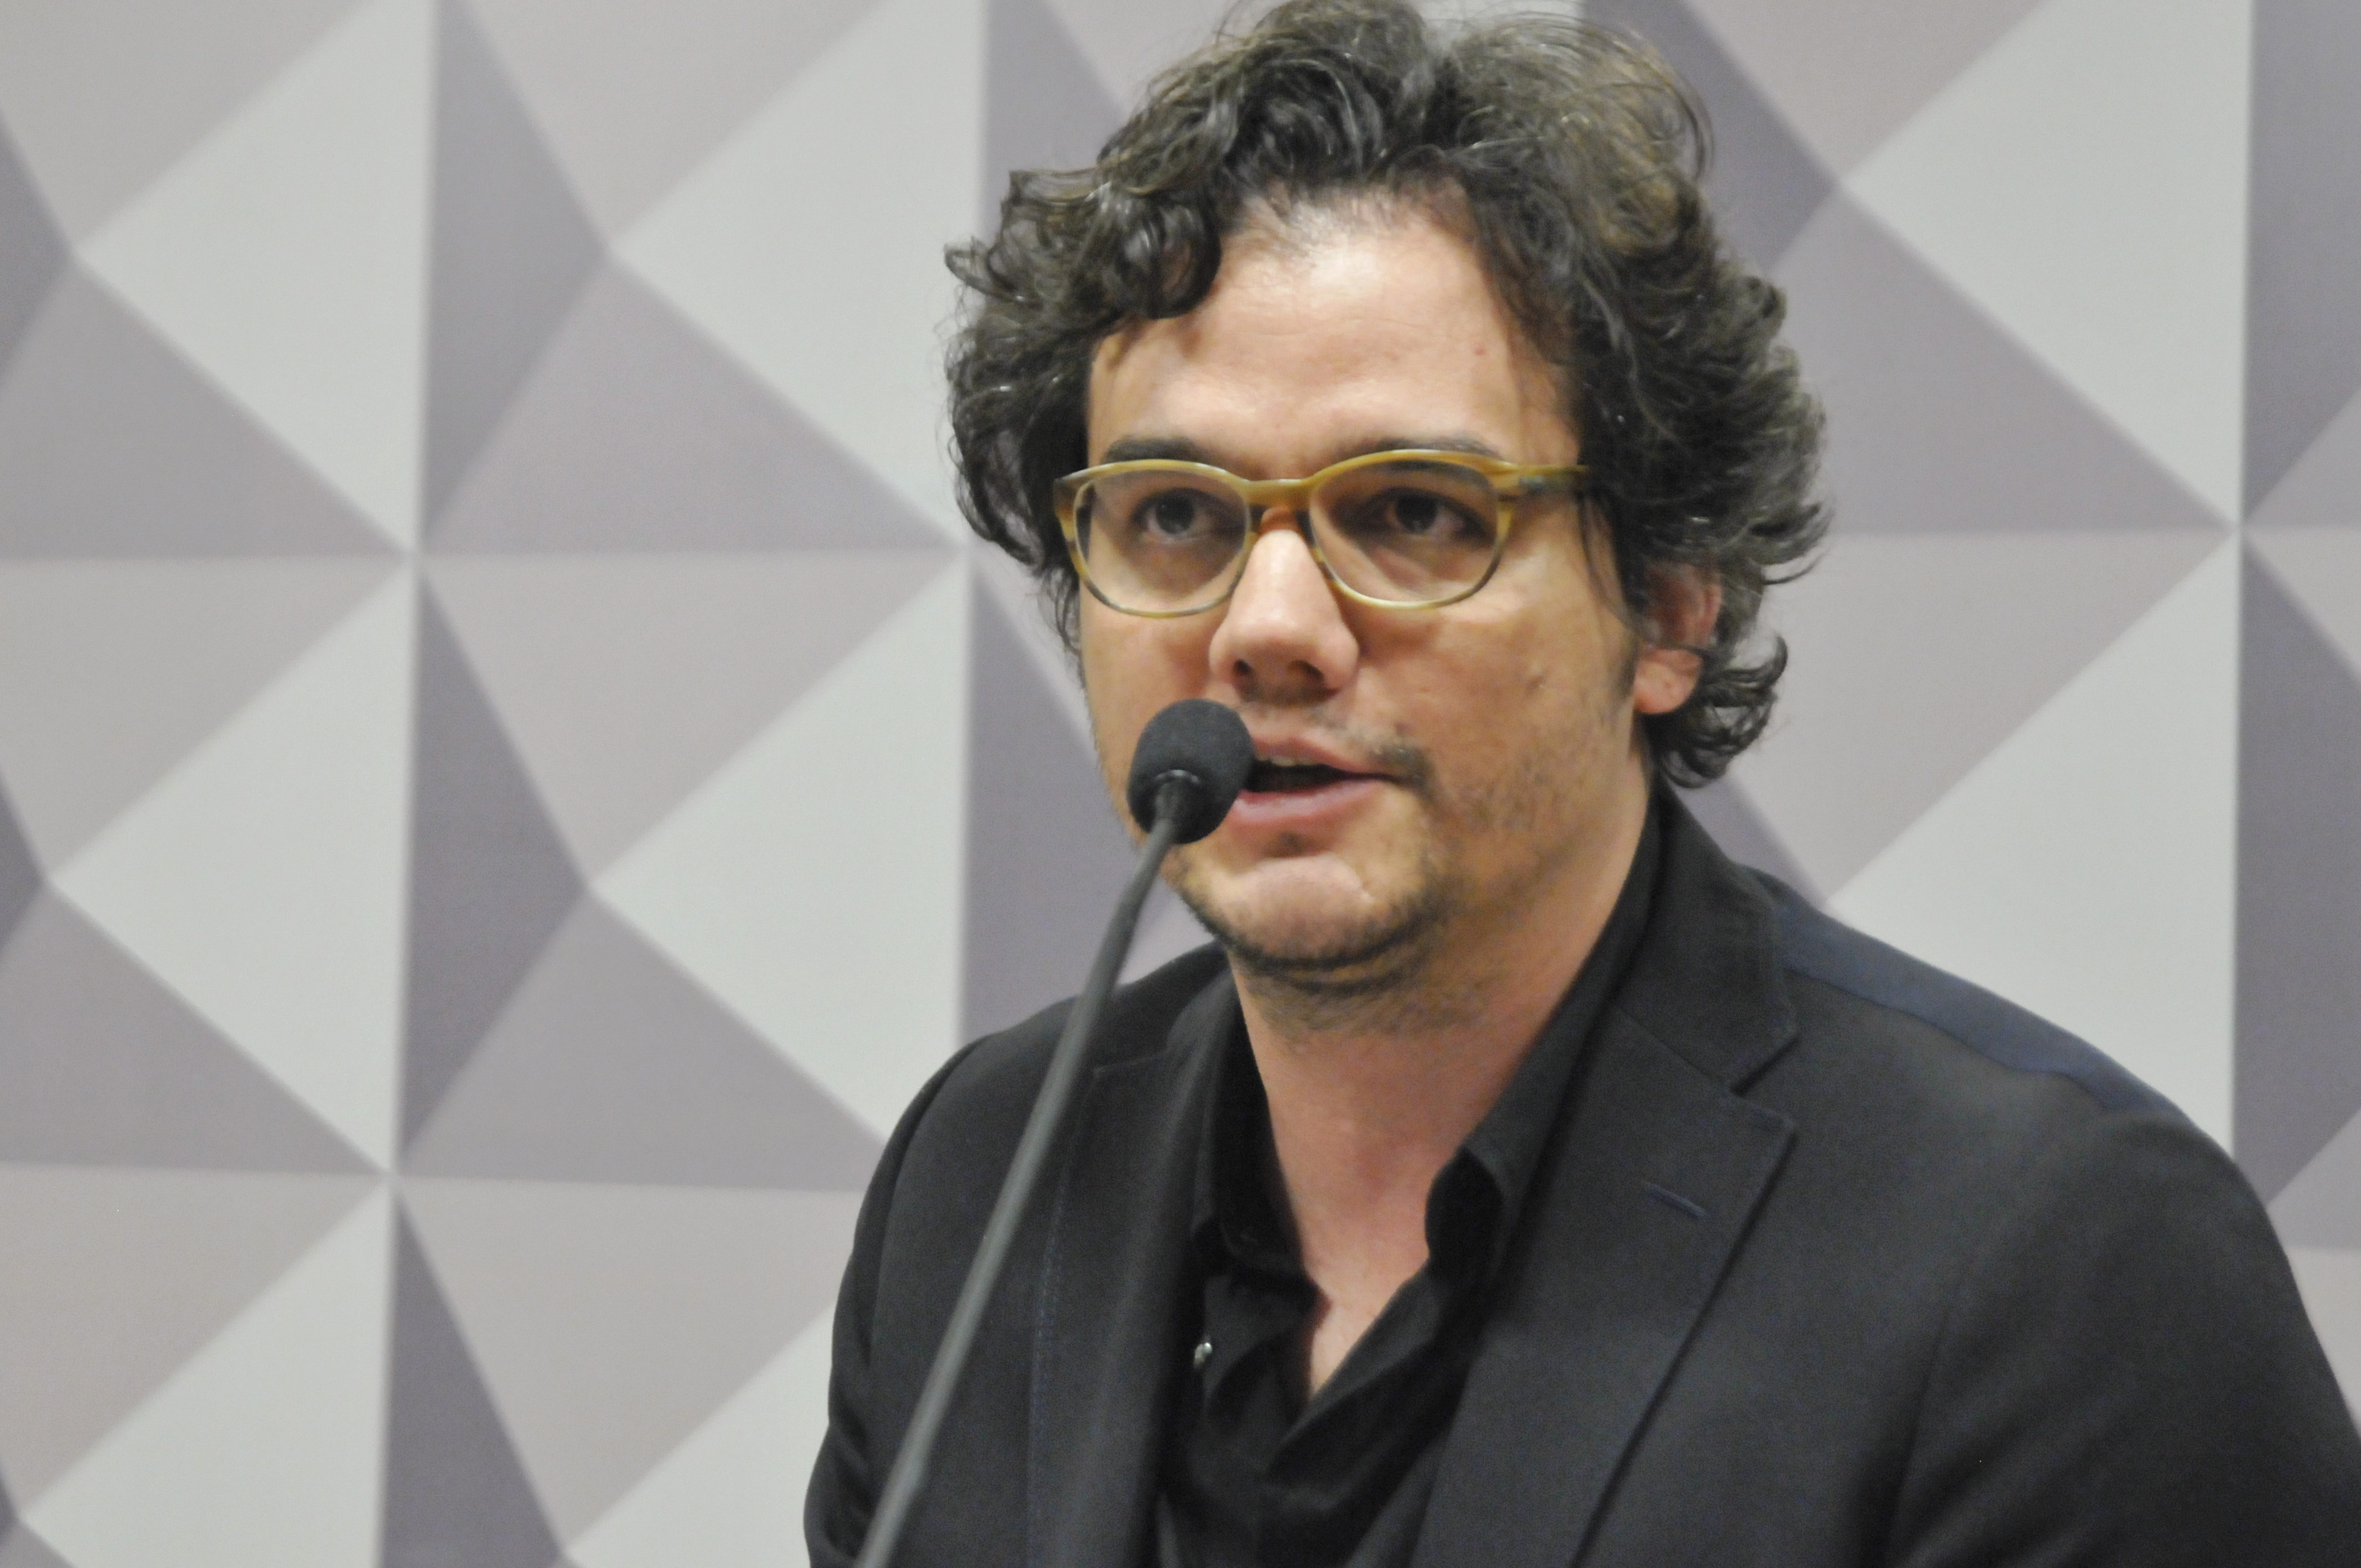 The 42-year old son of father José Moura and mother Alderiva Moura Wagner Moura in 2018 photo. Wagner Moura earned a  million dollar salary - leaving the net worth at 10 million in 2018